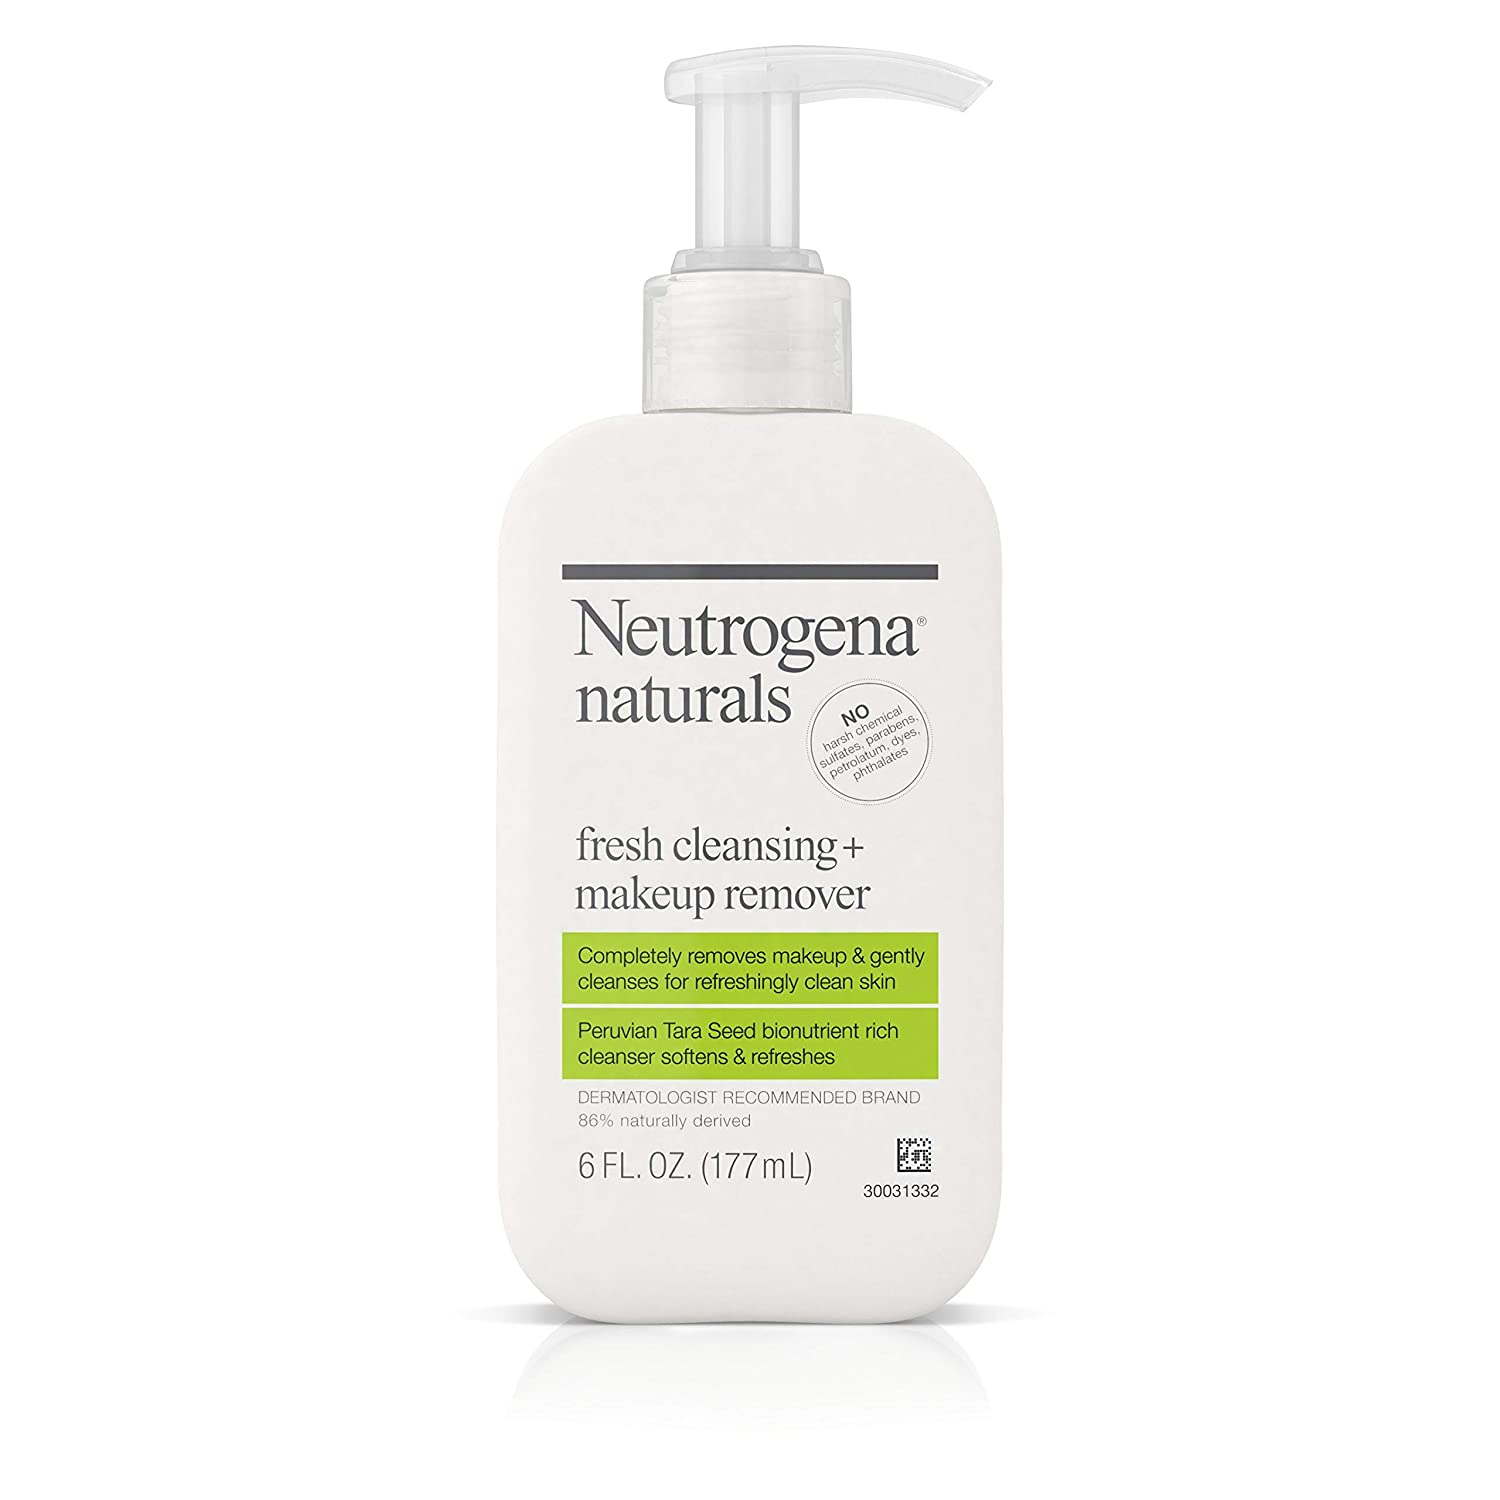 Amazon.com: Neutrogena Naturals Fresh Cleansing Daily Face Wash + Makeup Remover with Naturally-Derived Peruvian Tara Seed, Hypoallergenic, Non-Comedogenic ...